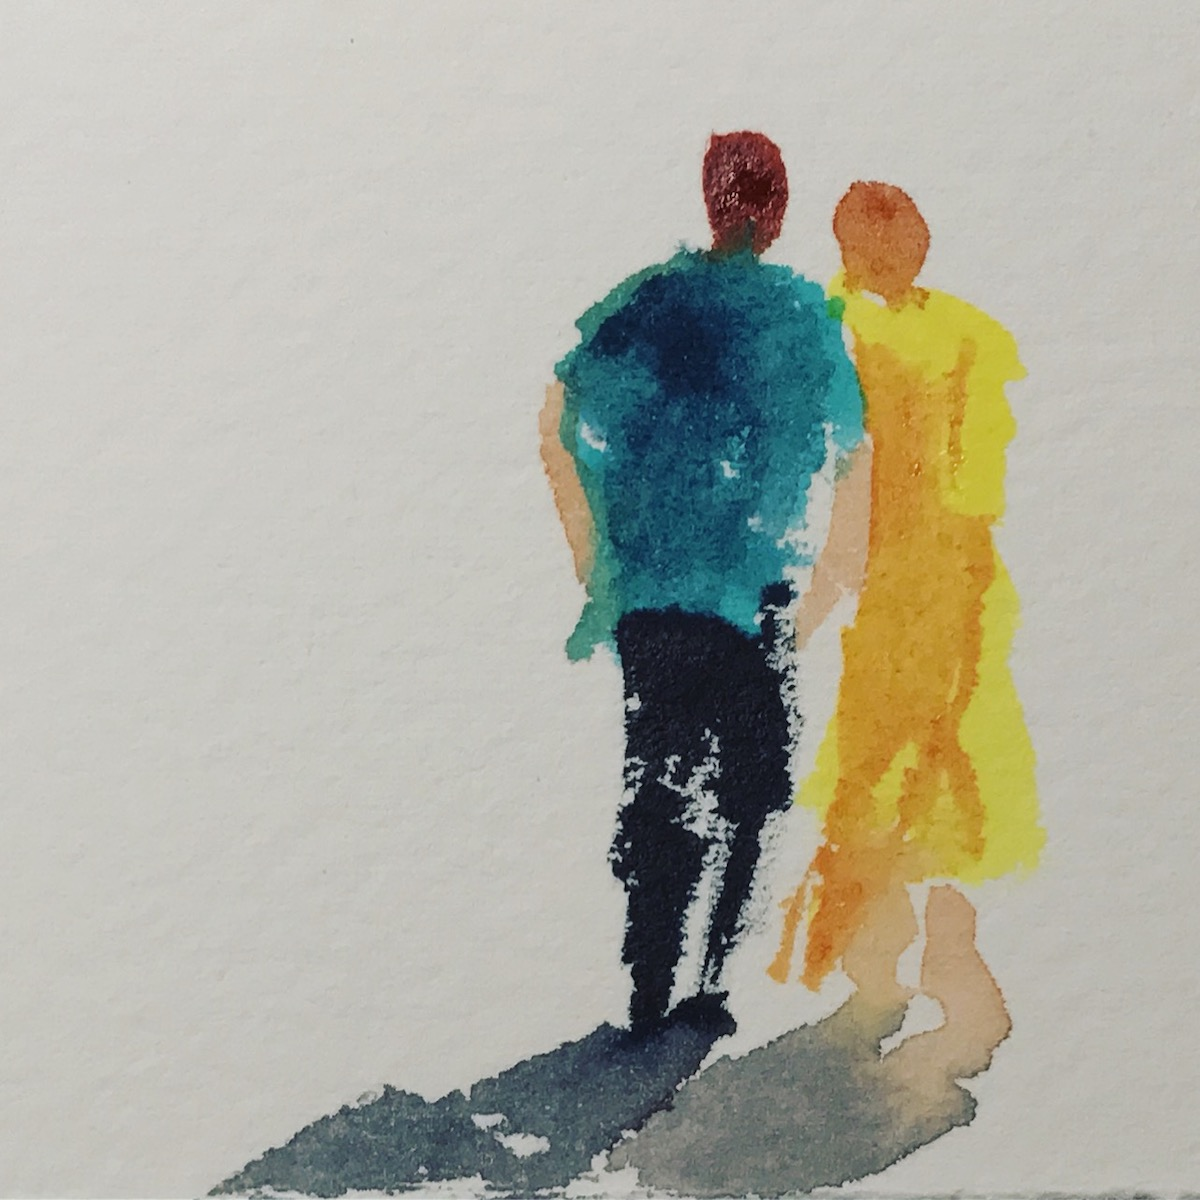 Watercolor exercise - painting people